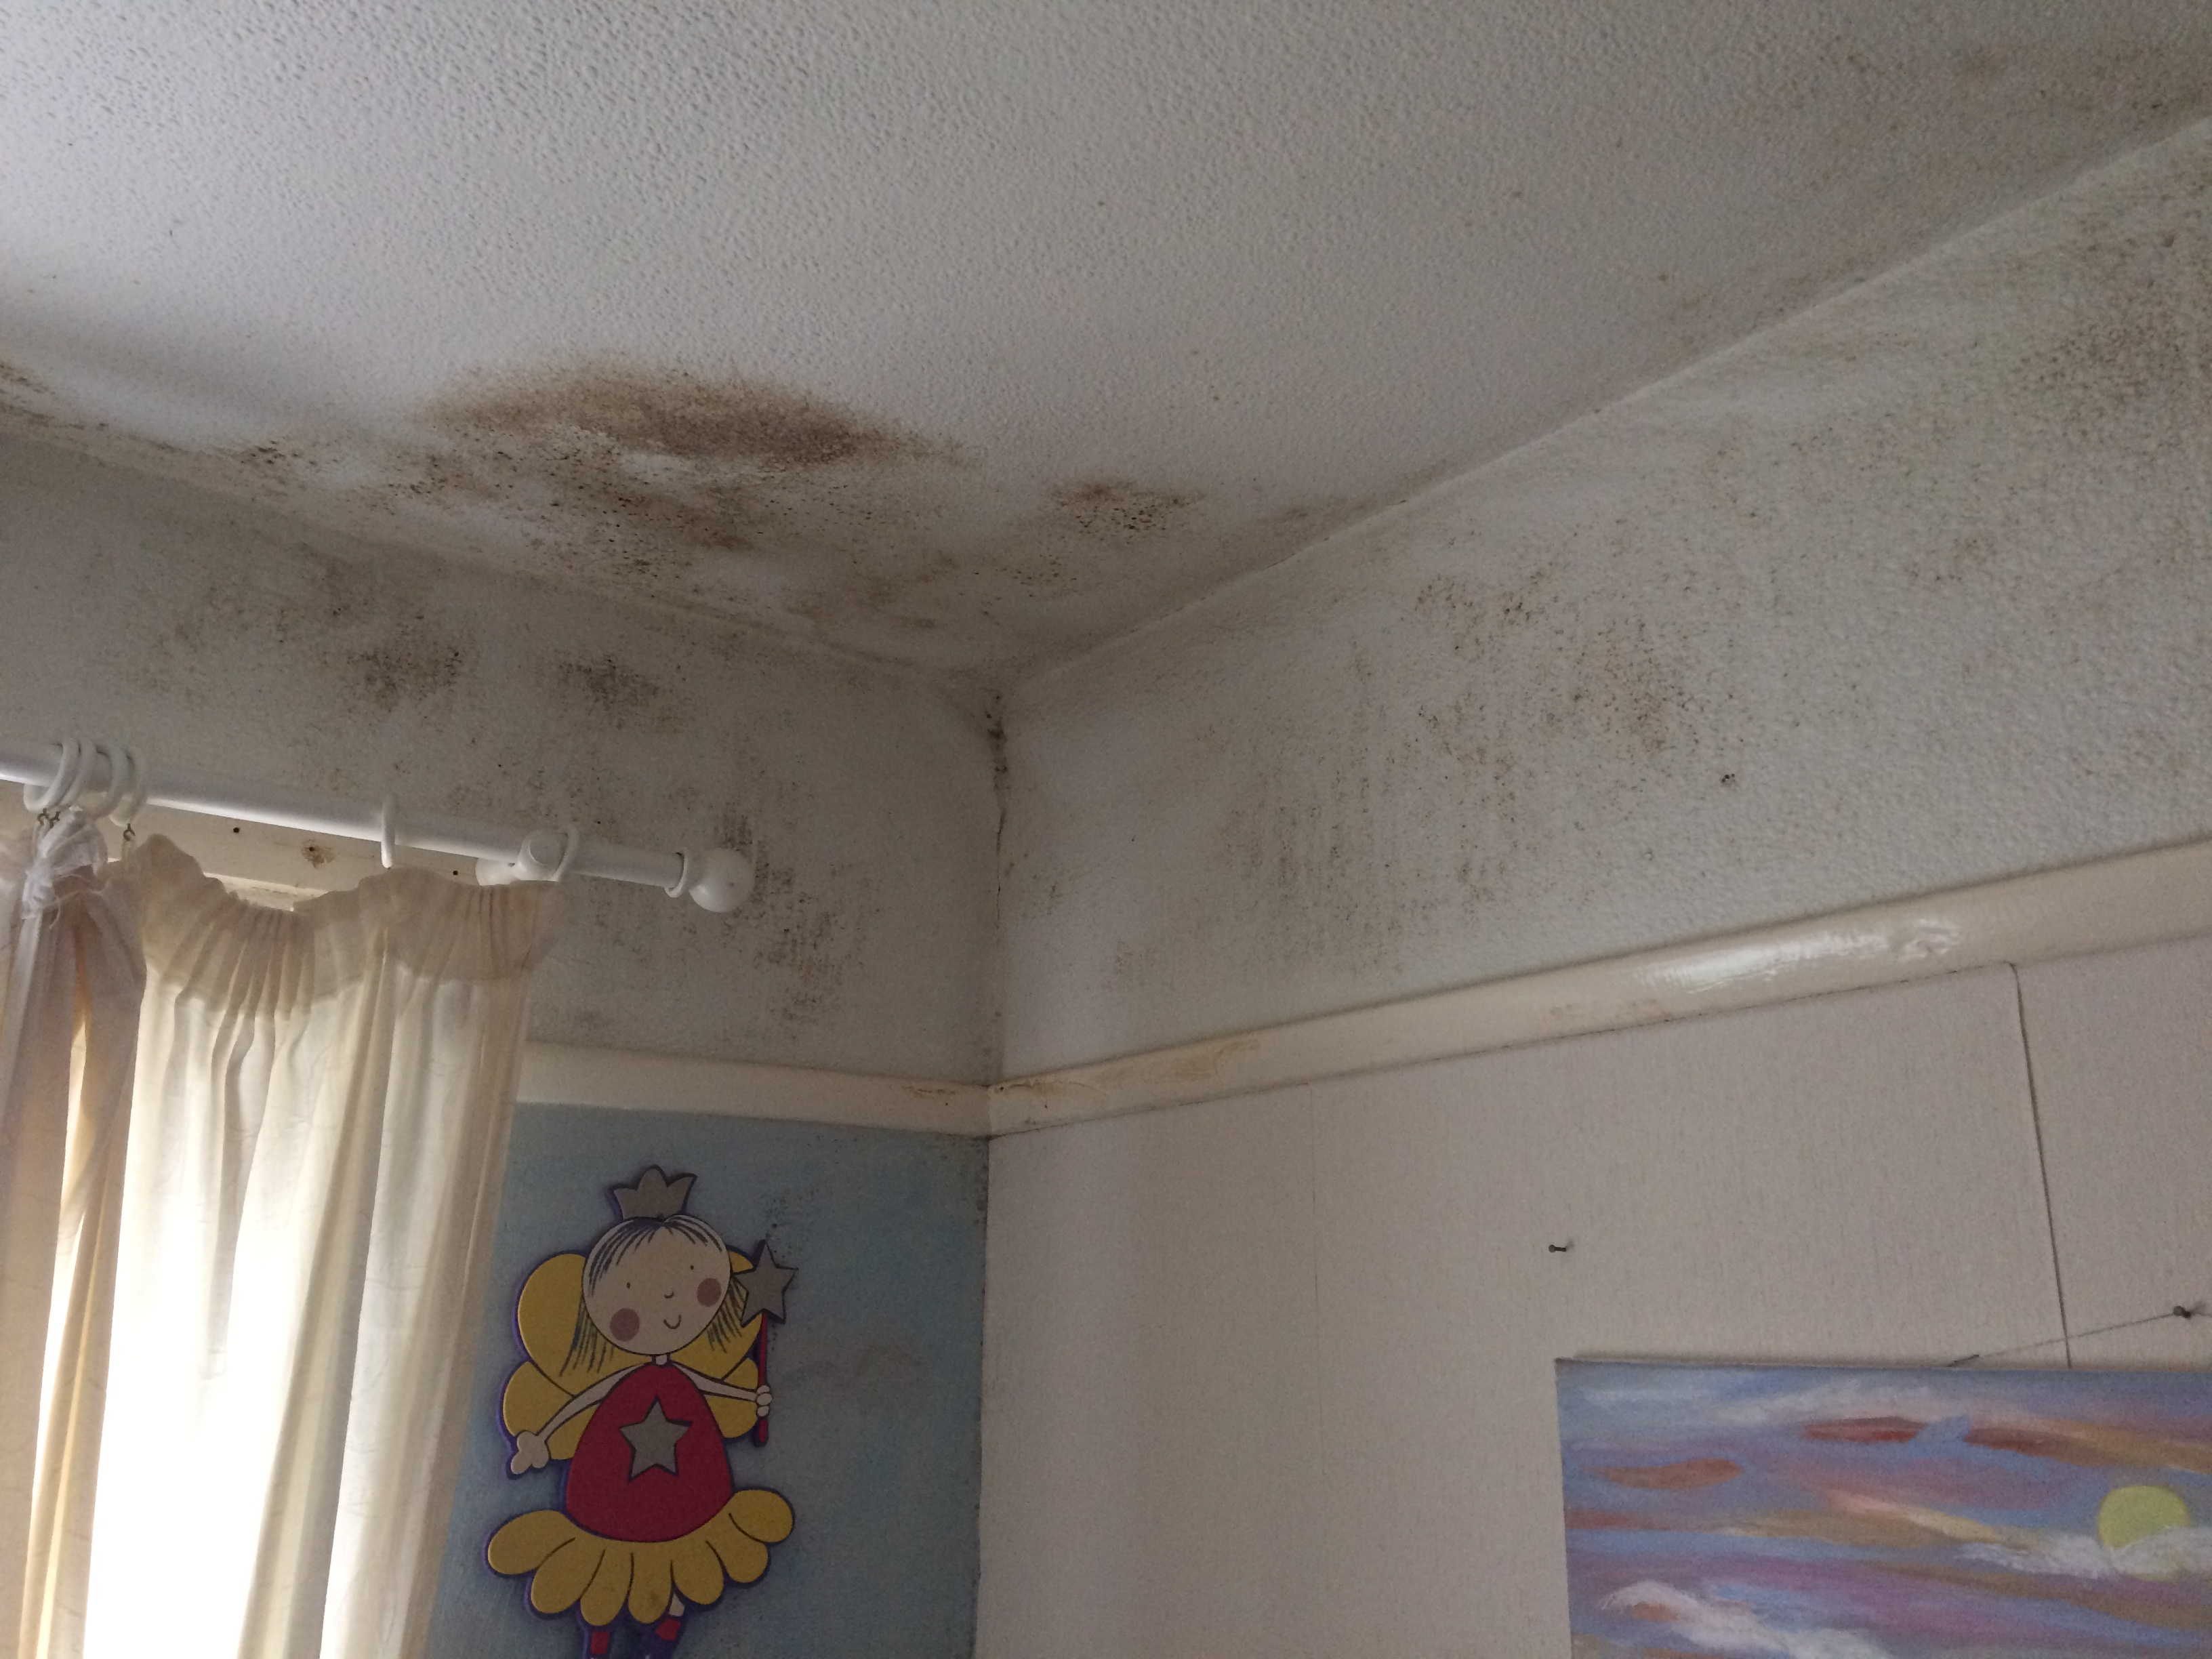 Picture of damp on the walls of a childs bedroom